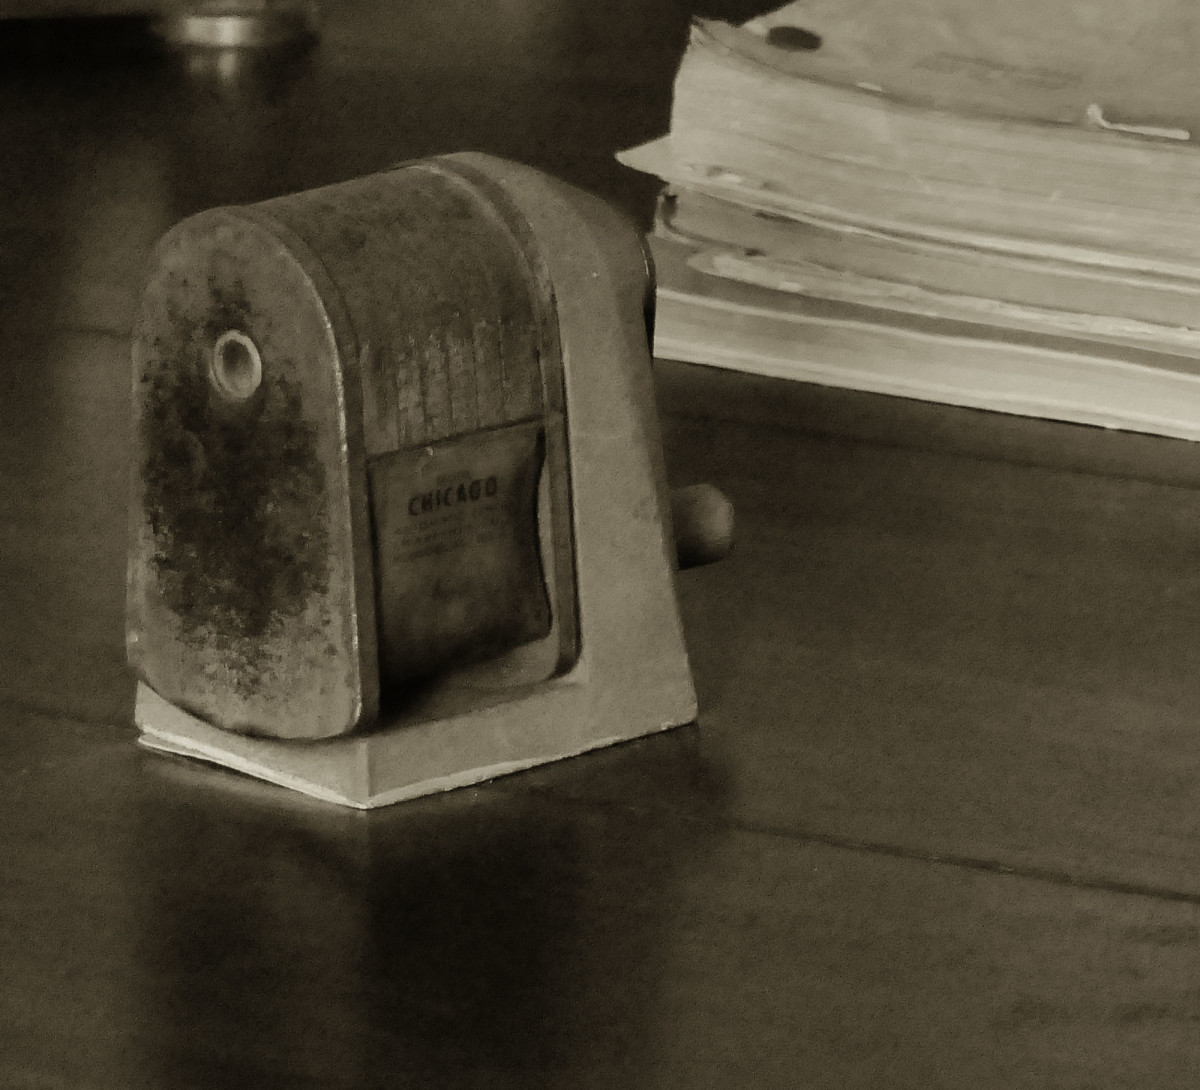 A Hemmingway relic pencil sharpener.